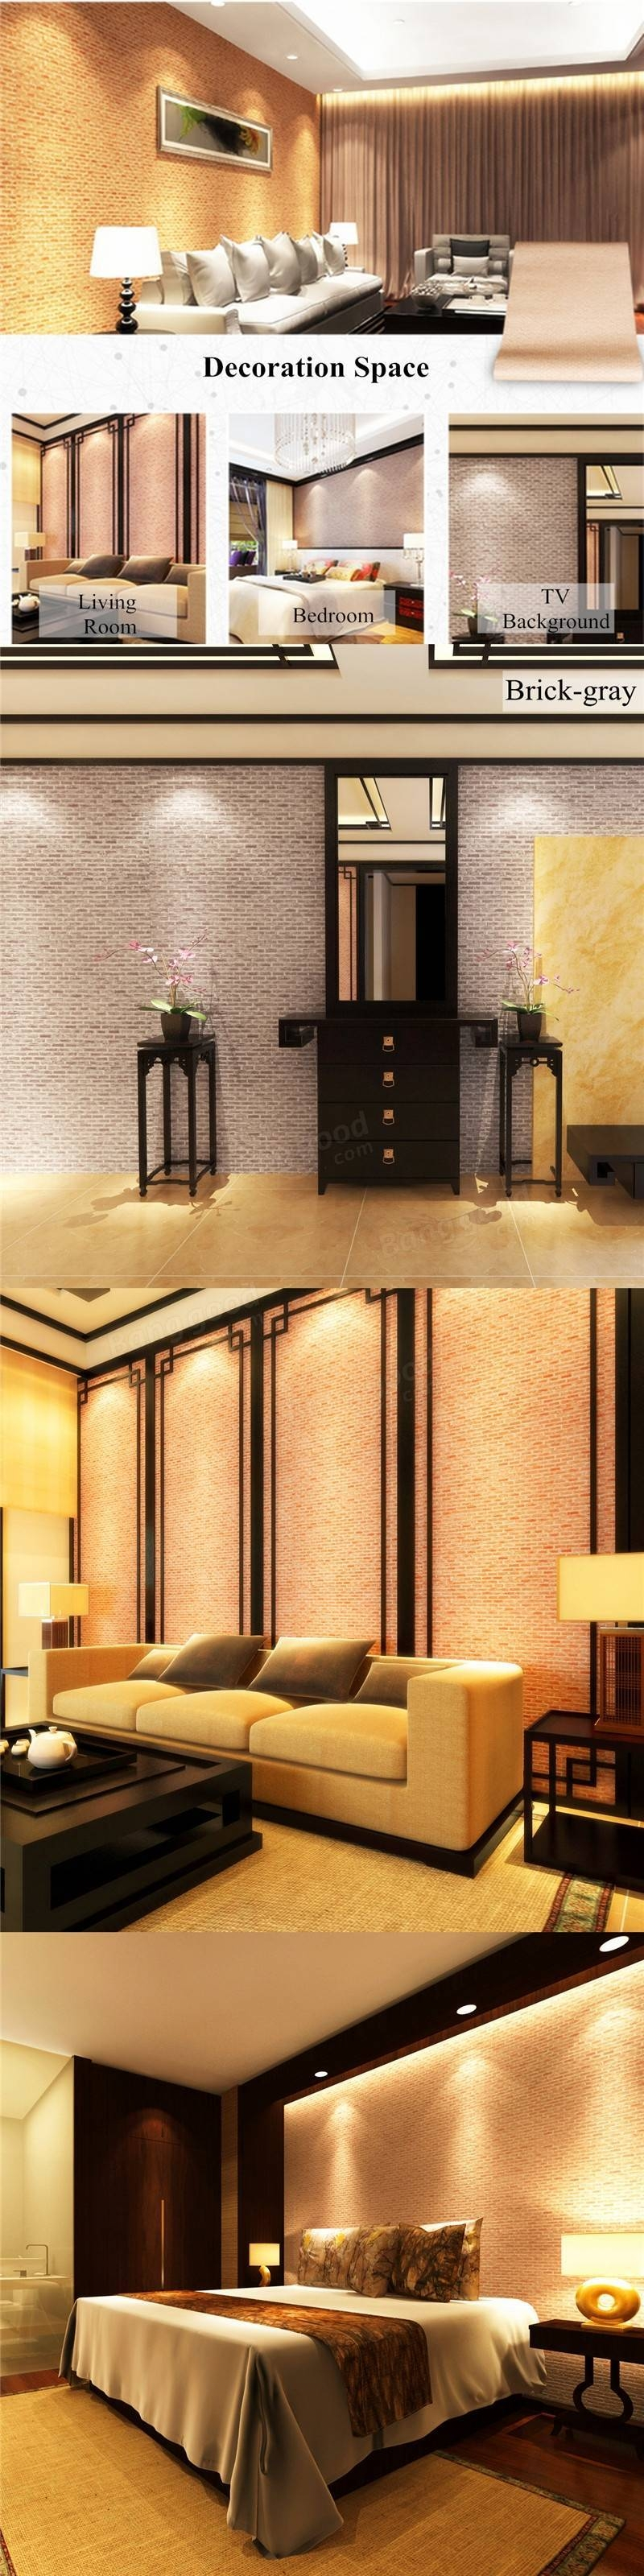 10M 3D Wallpaper Roll Vintage Effect Natural Embossed Stack Stone In Most Recent Space 3D Vinyl Wall Art (View 1 of 20)